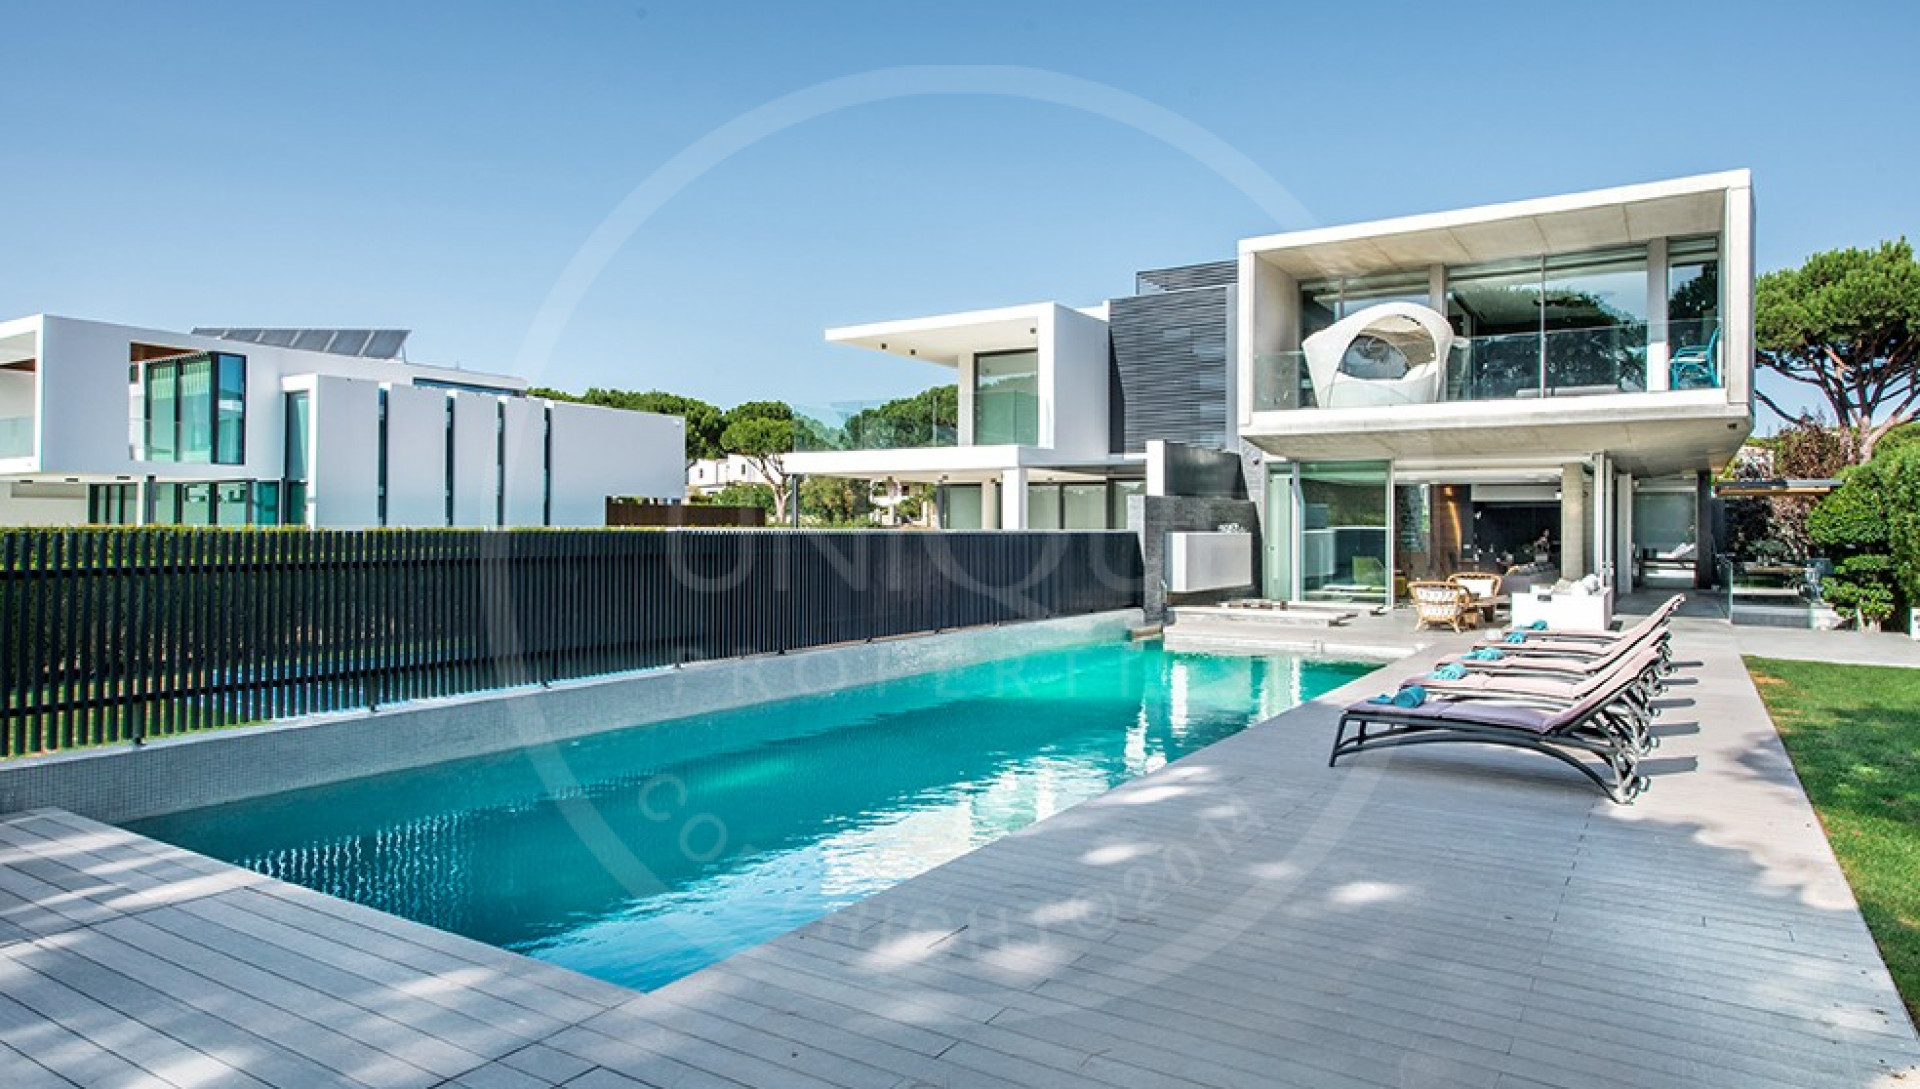 Luxury 4 Bedroom Villa Vilamoura With Private Pool And Walking Distance To The Marina